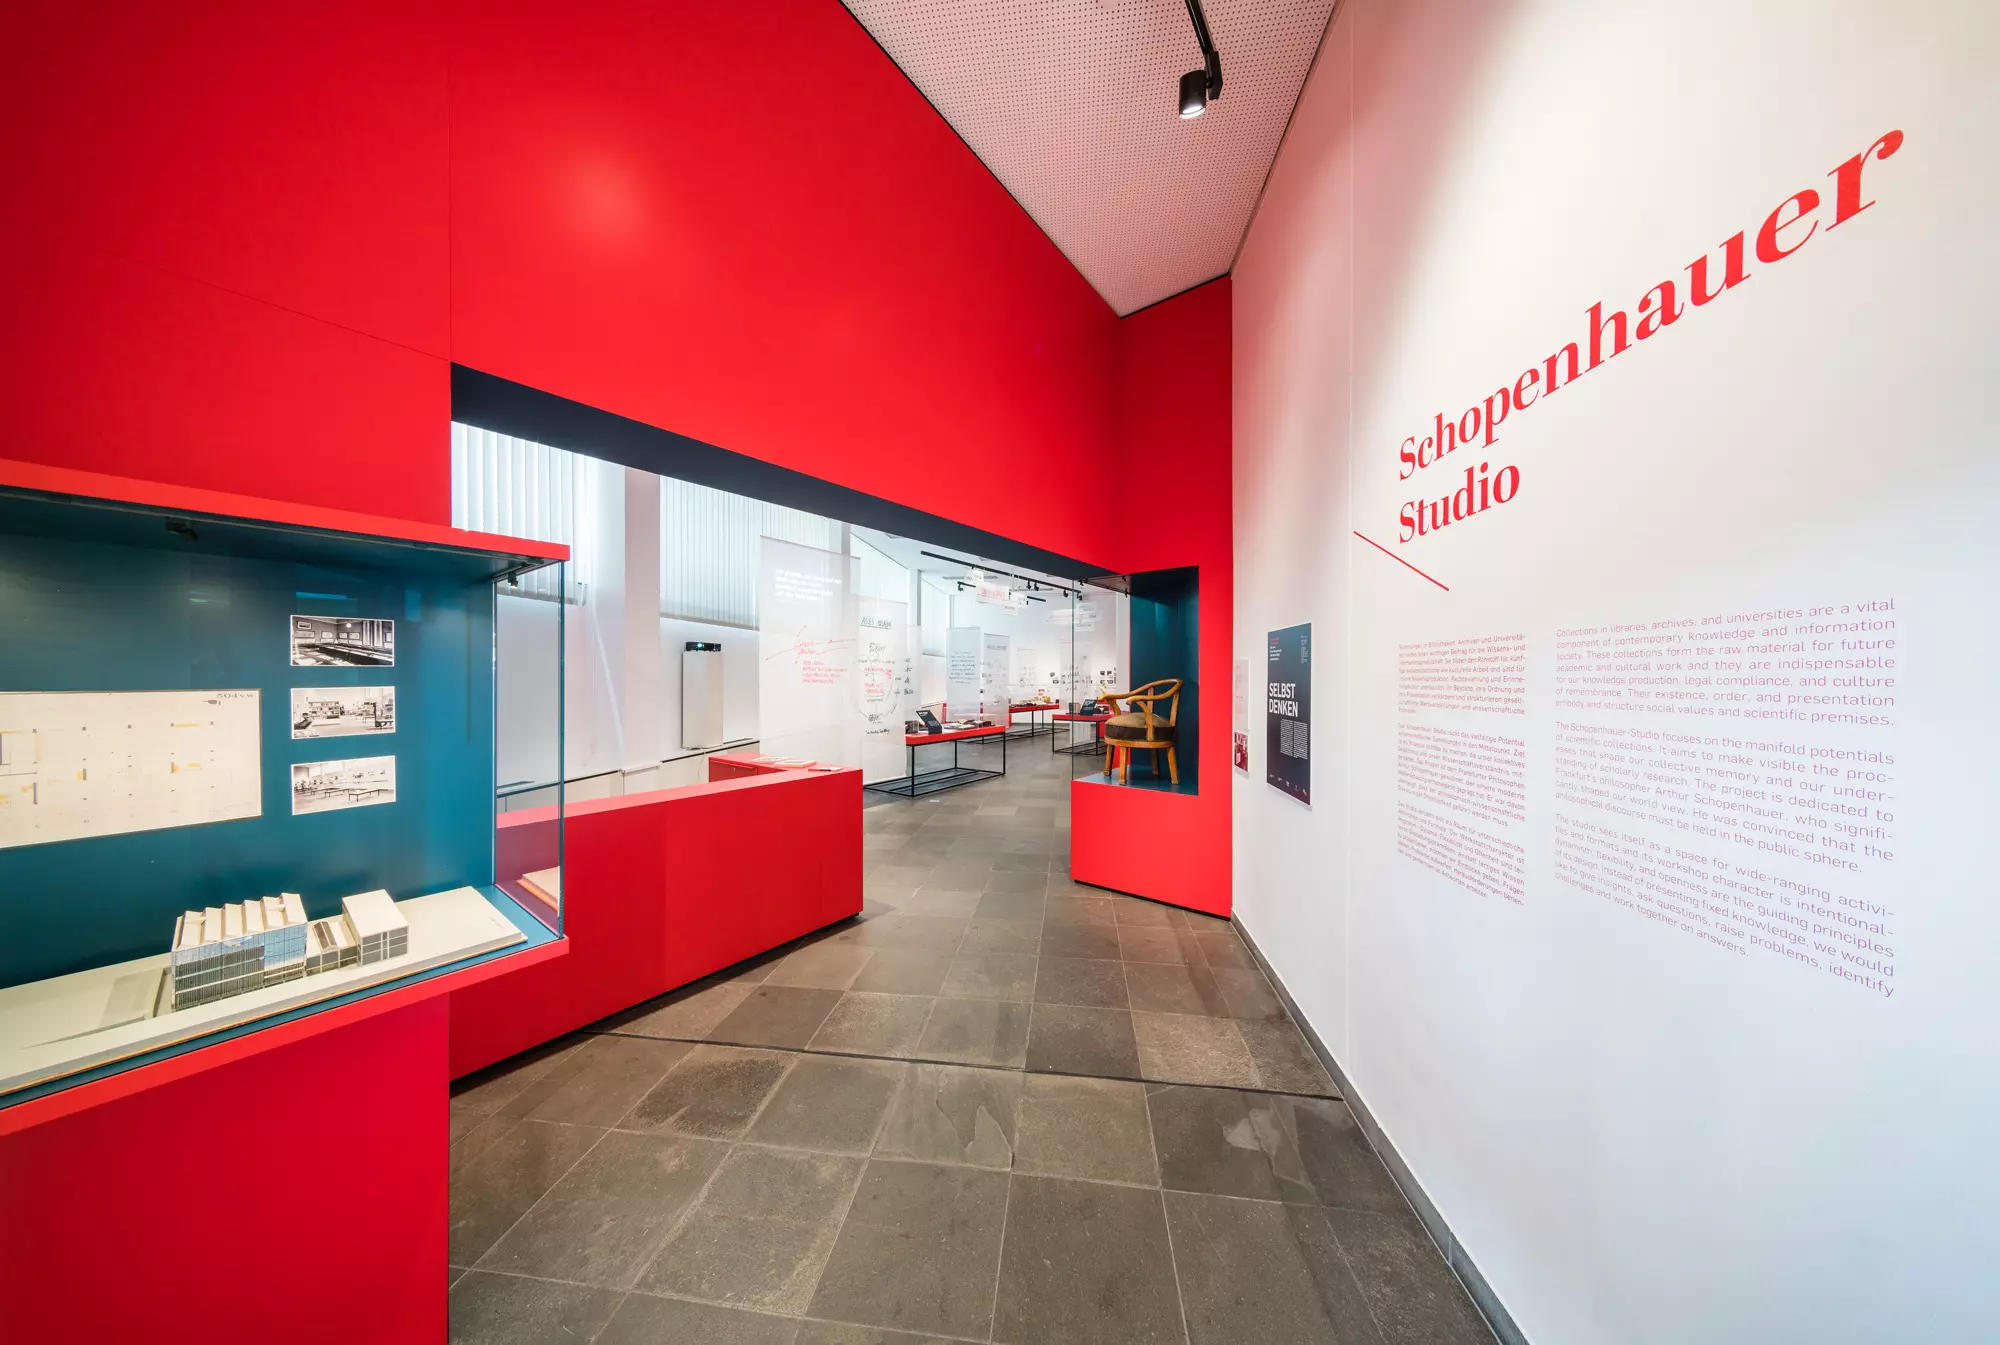 Anniversary exhibitions and the Schopenhauer Studio